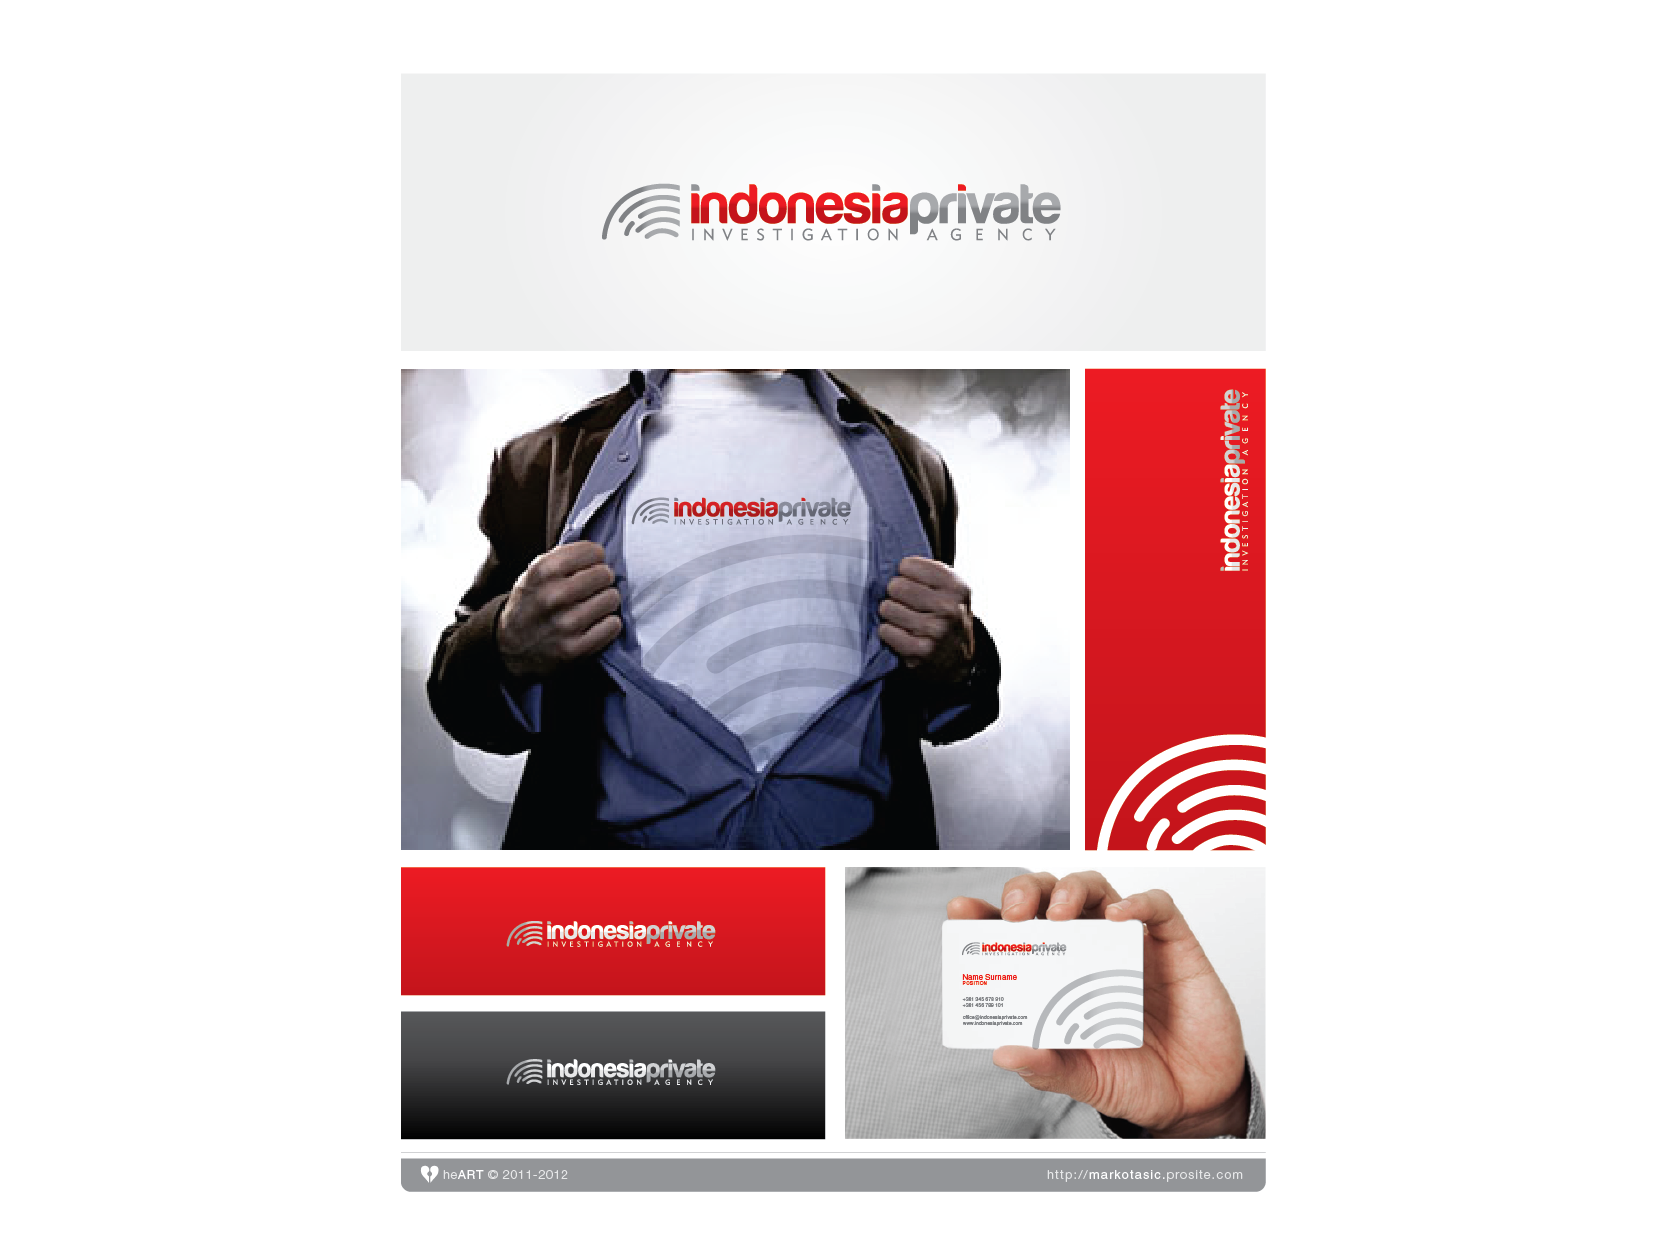 logo for Indonesia Private Investigation Agency